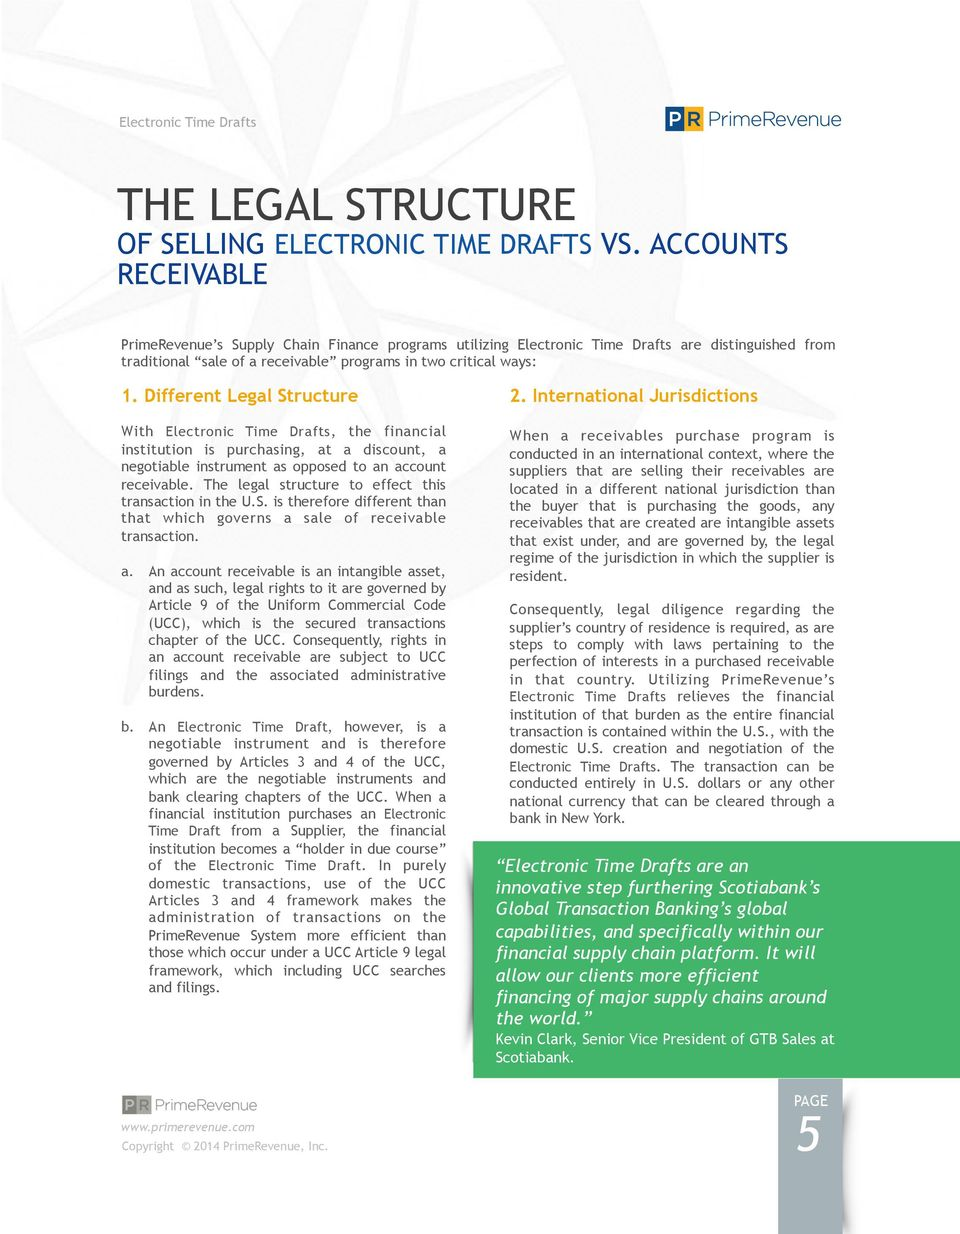 Different Legal Structure With Electronic Time Drafts, the financial institution is purchasing, at a discount, a negotiable instrument as opposed to an account receivable.